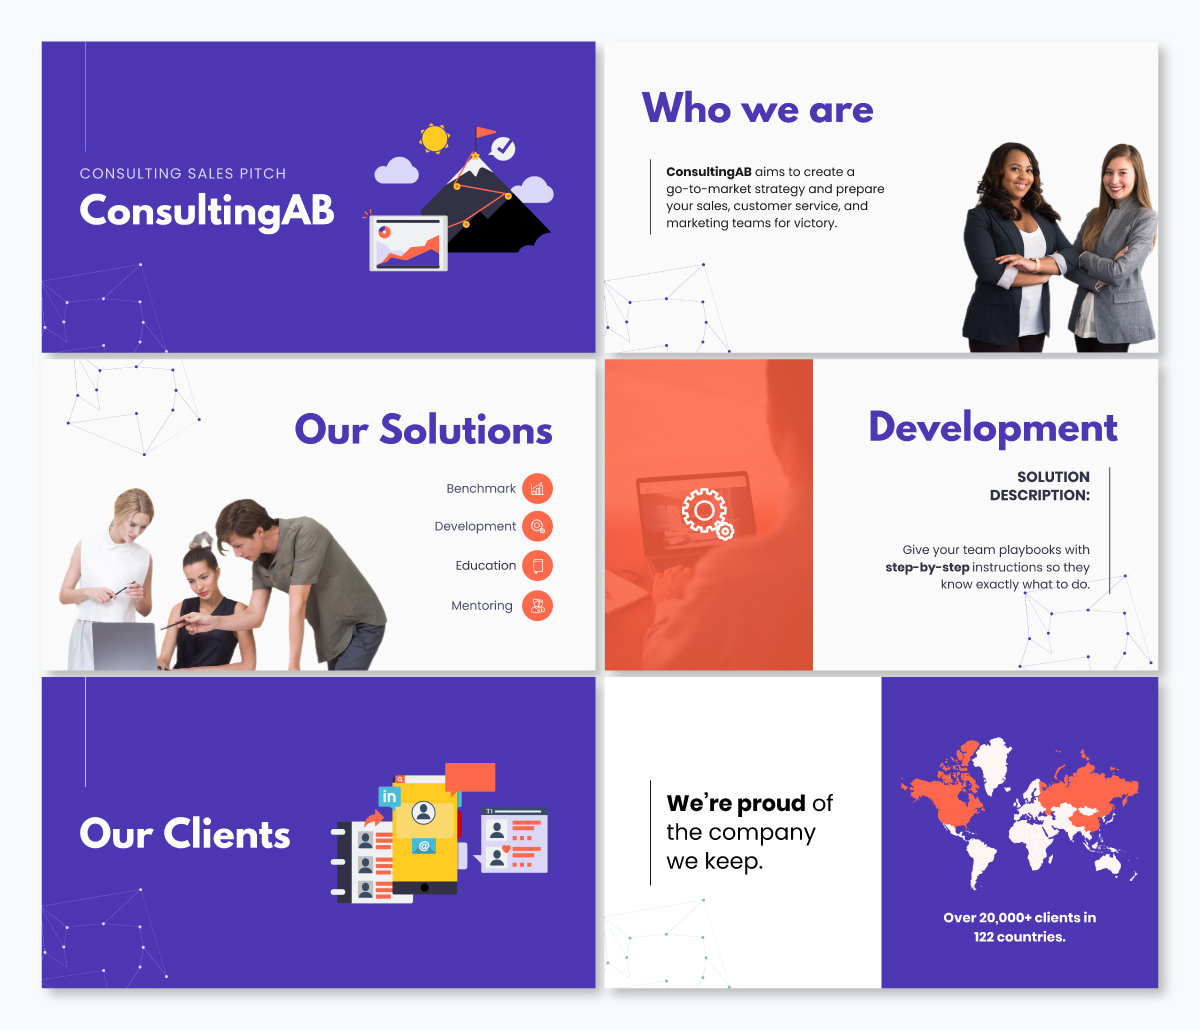 A consulting keynote template available in Visme.